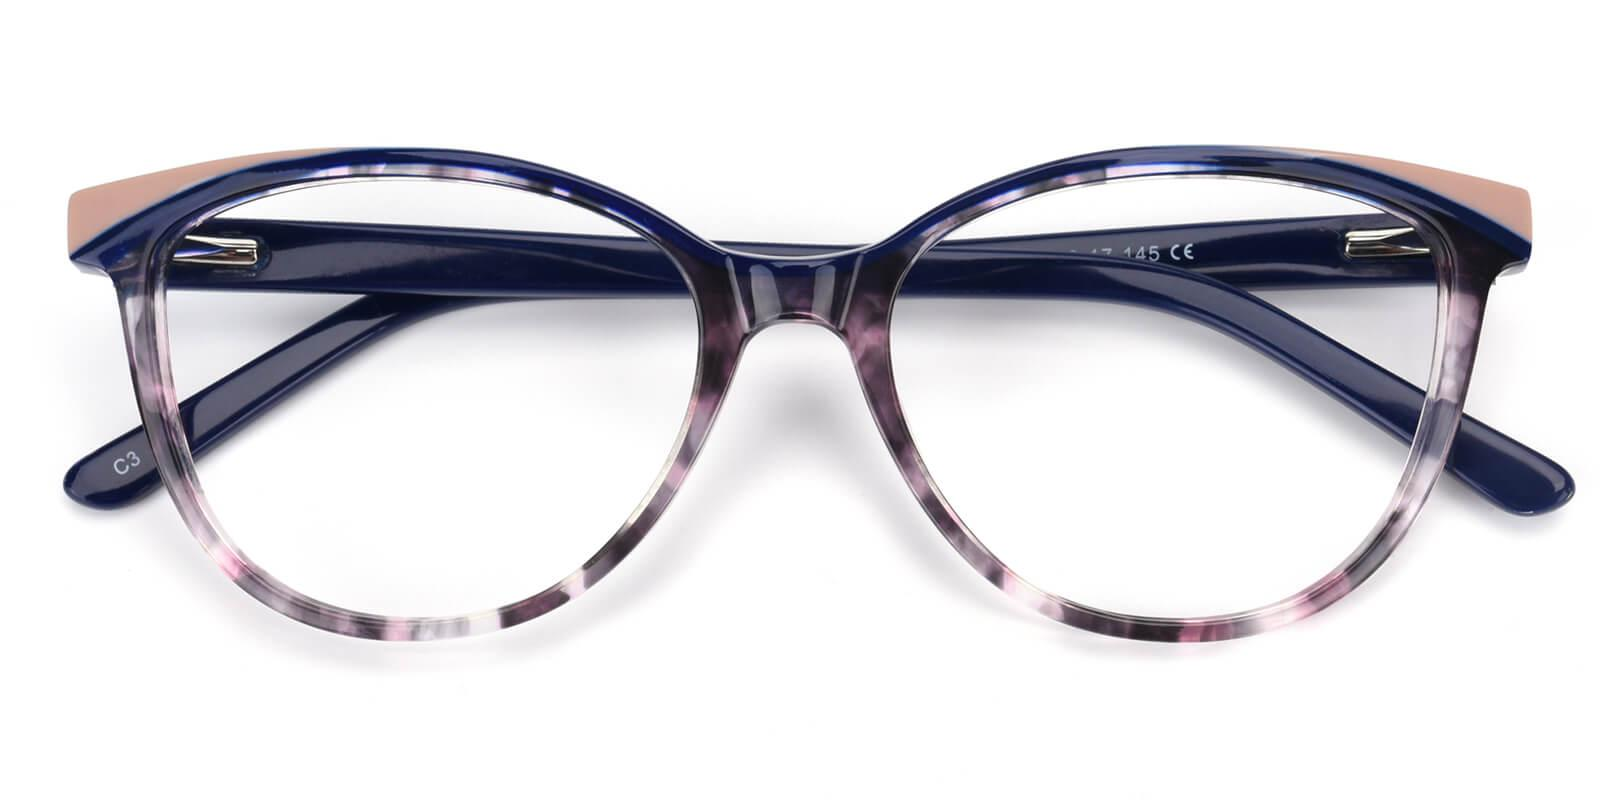 Cynthialy-Blue-Oval / Cat-Acetate-Eyeglasses-detail